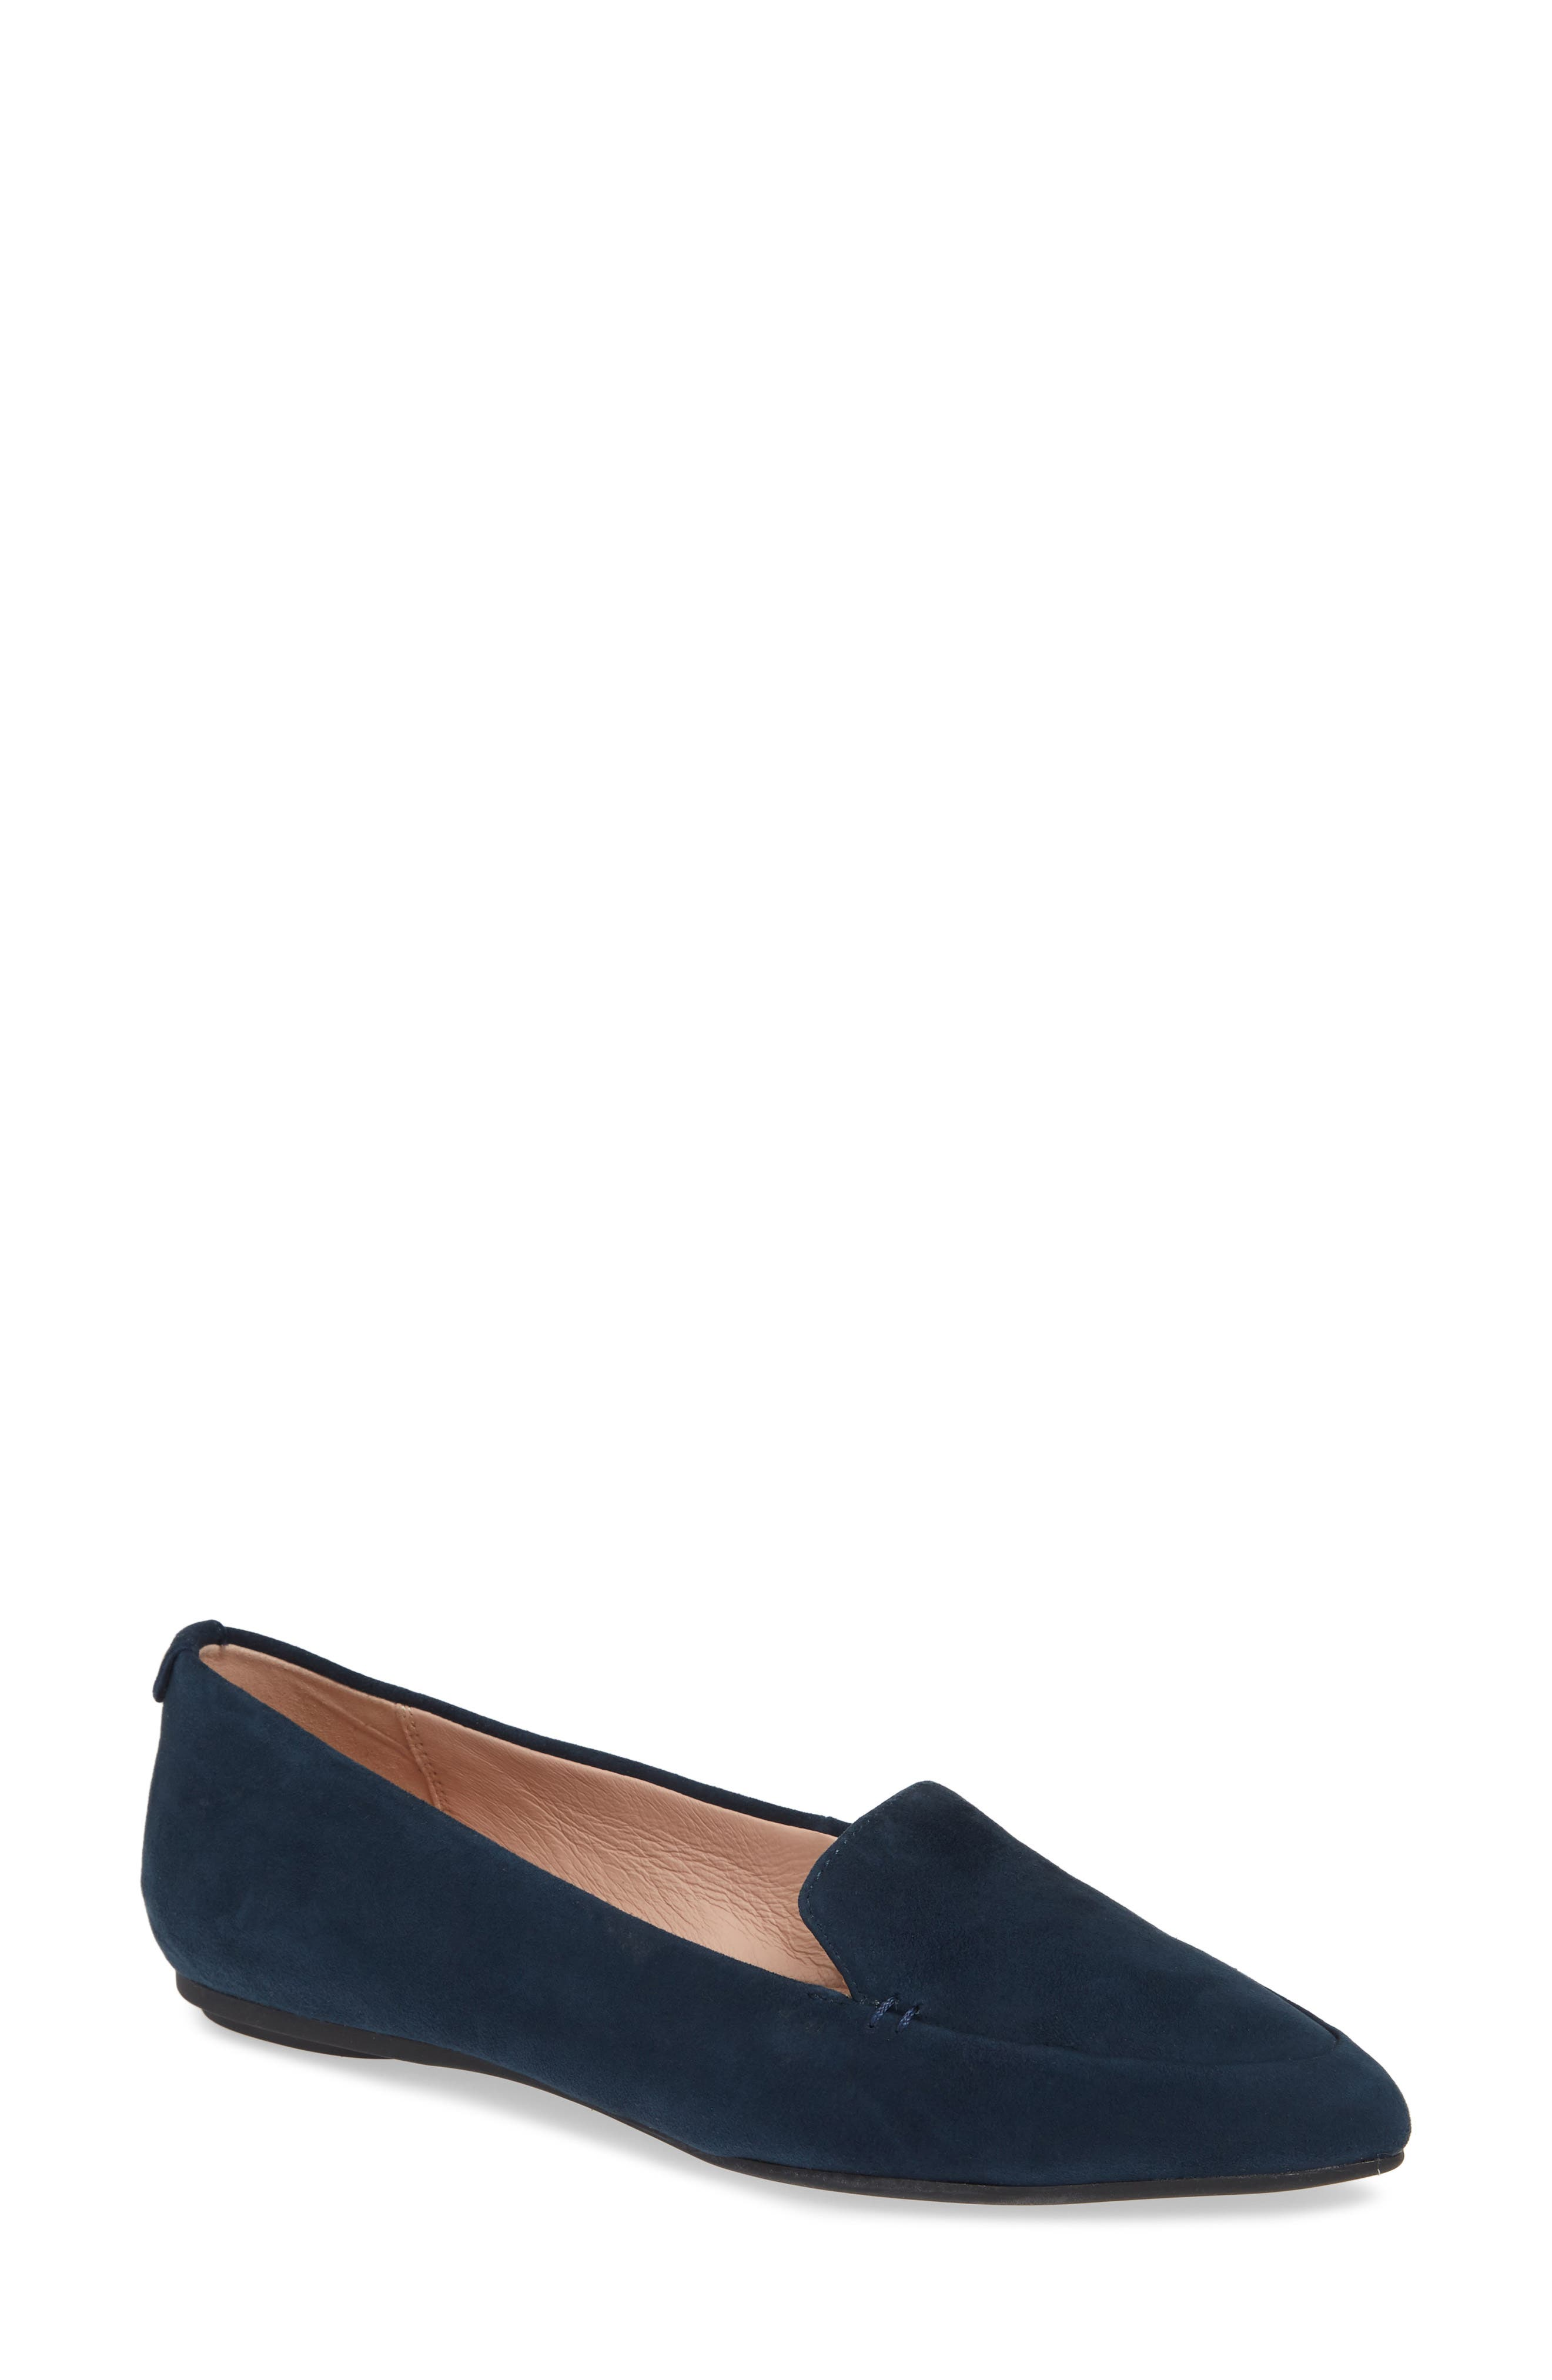 Faye Suede Flat Loafers in Midnight Suede